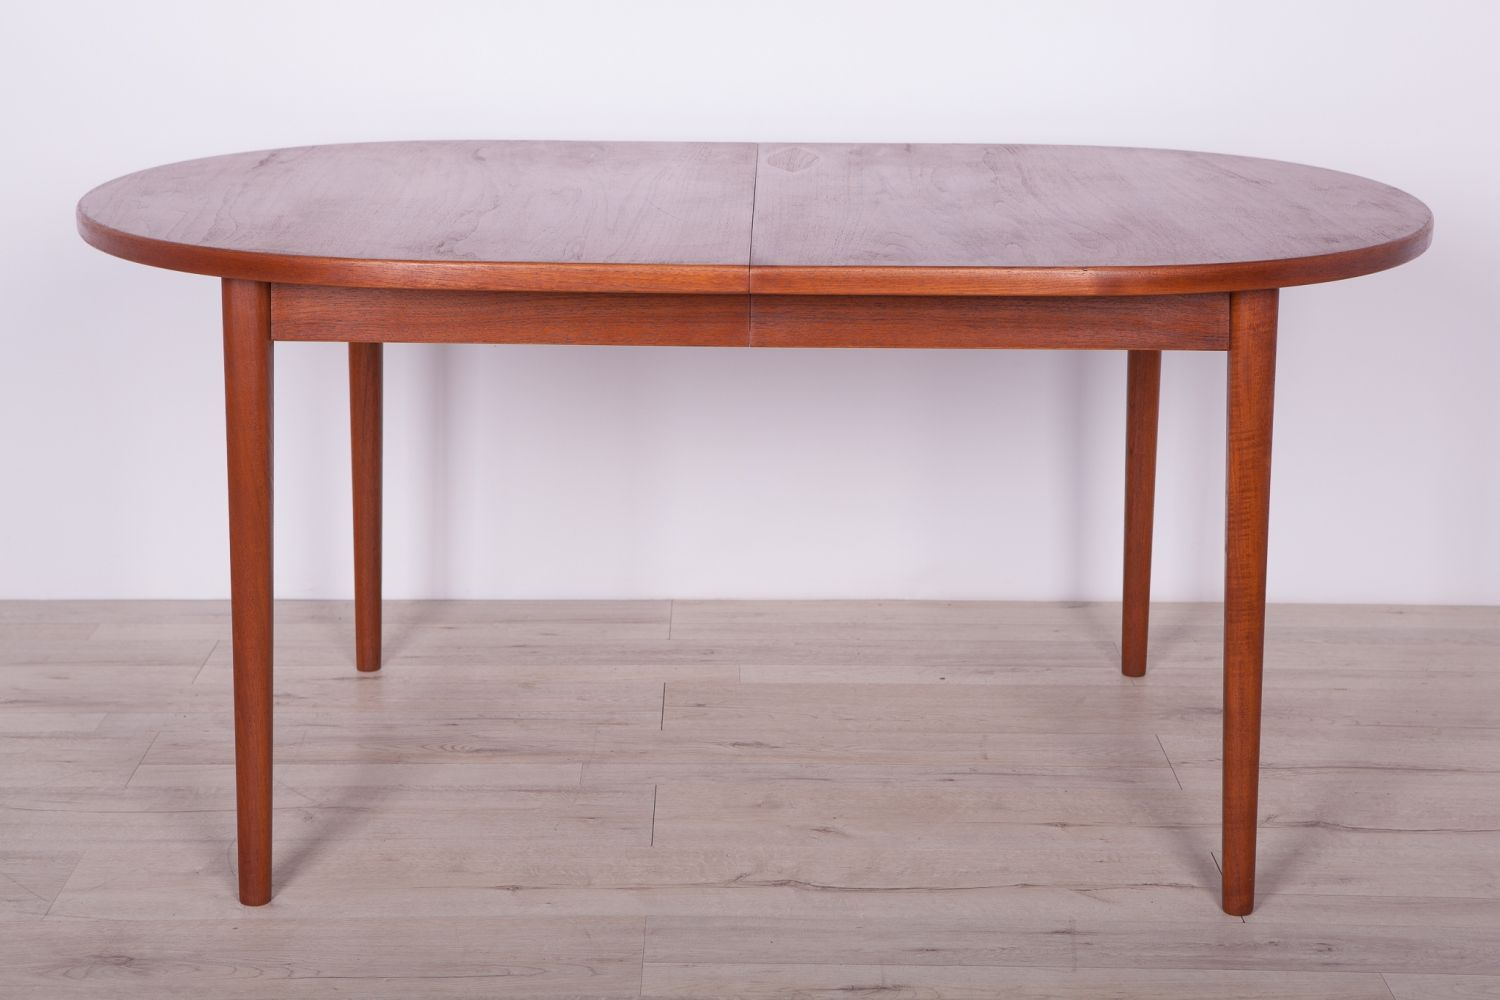 For Sale Mid Century Teak Dining Table By Nils Jonsson For Hugo Troeds 1960s In 2020 Teak Dining Table Table Dining Table